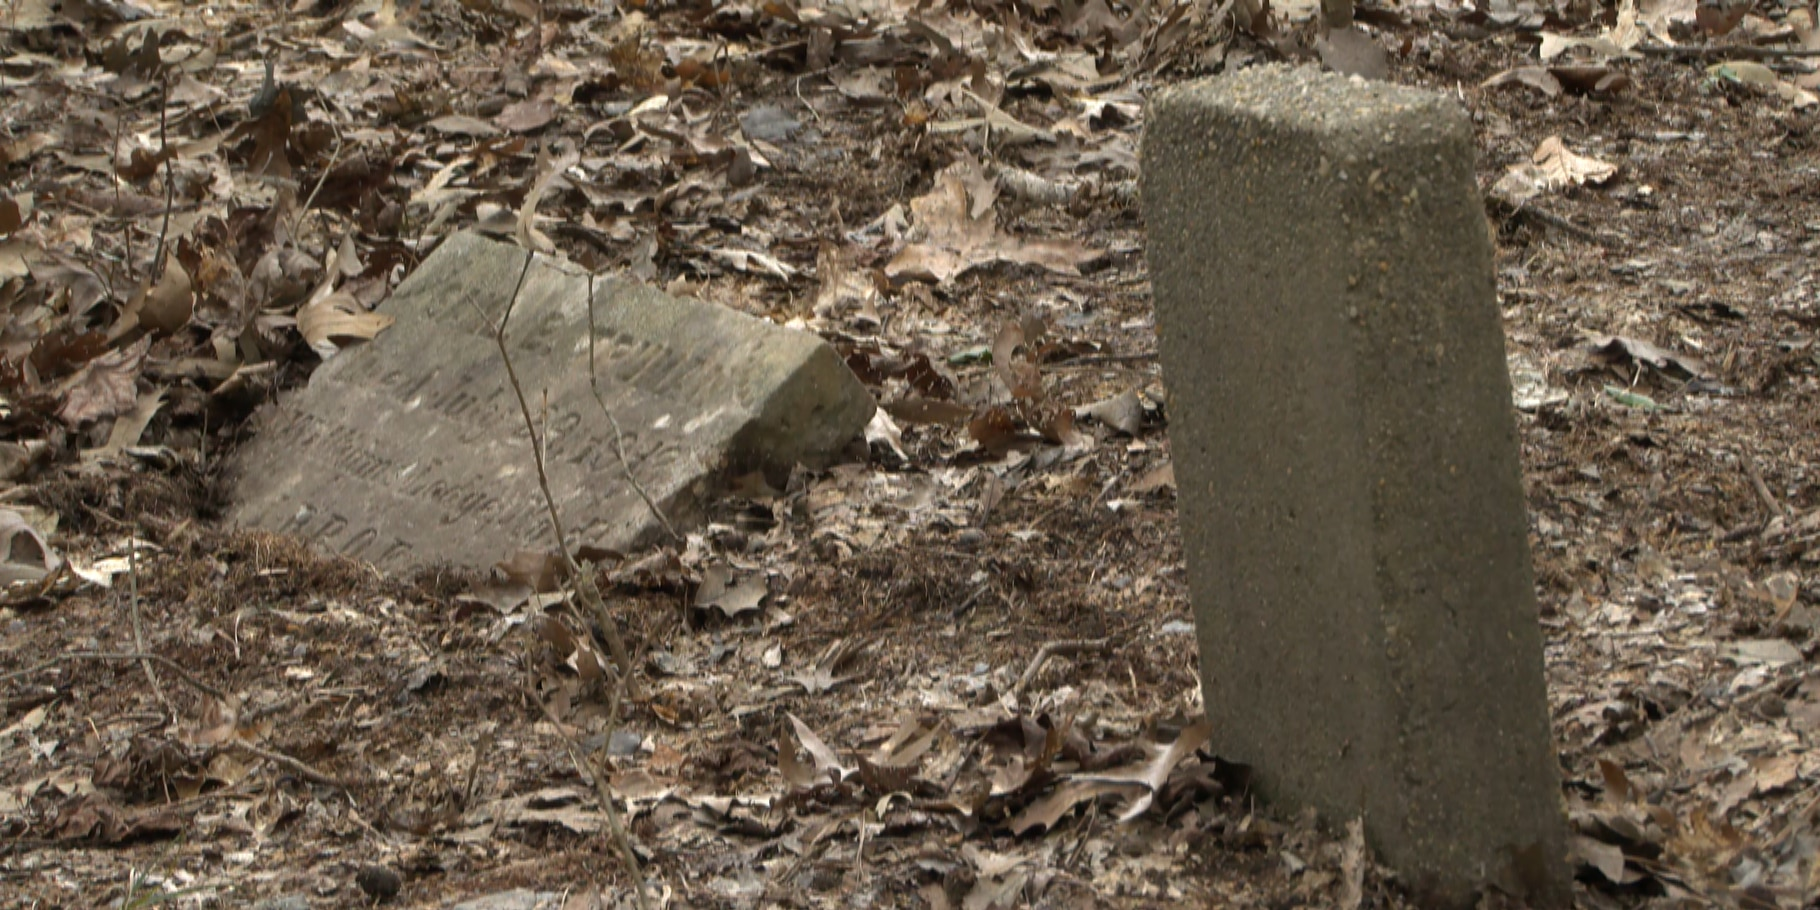 'It's fantastic': Archaeologists find artifacts on Henrico property from multiple time periods